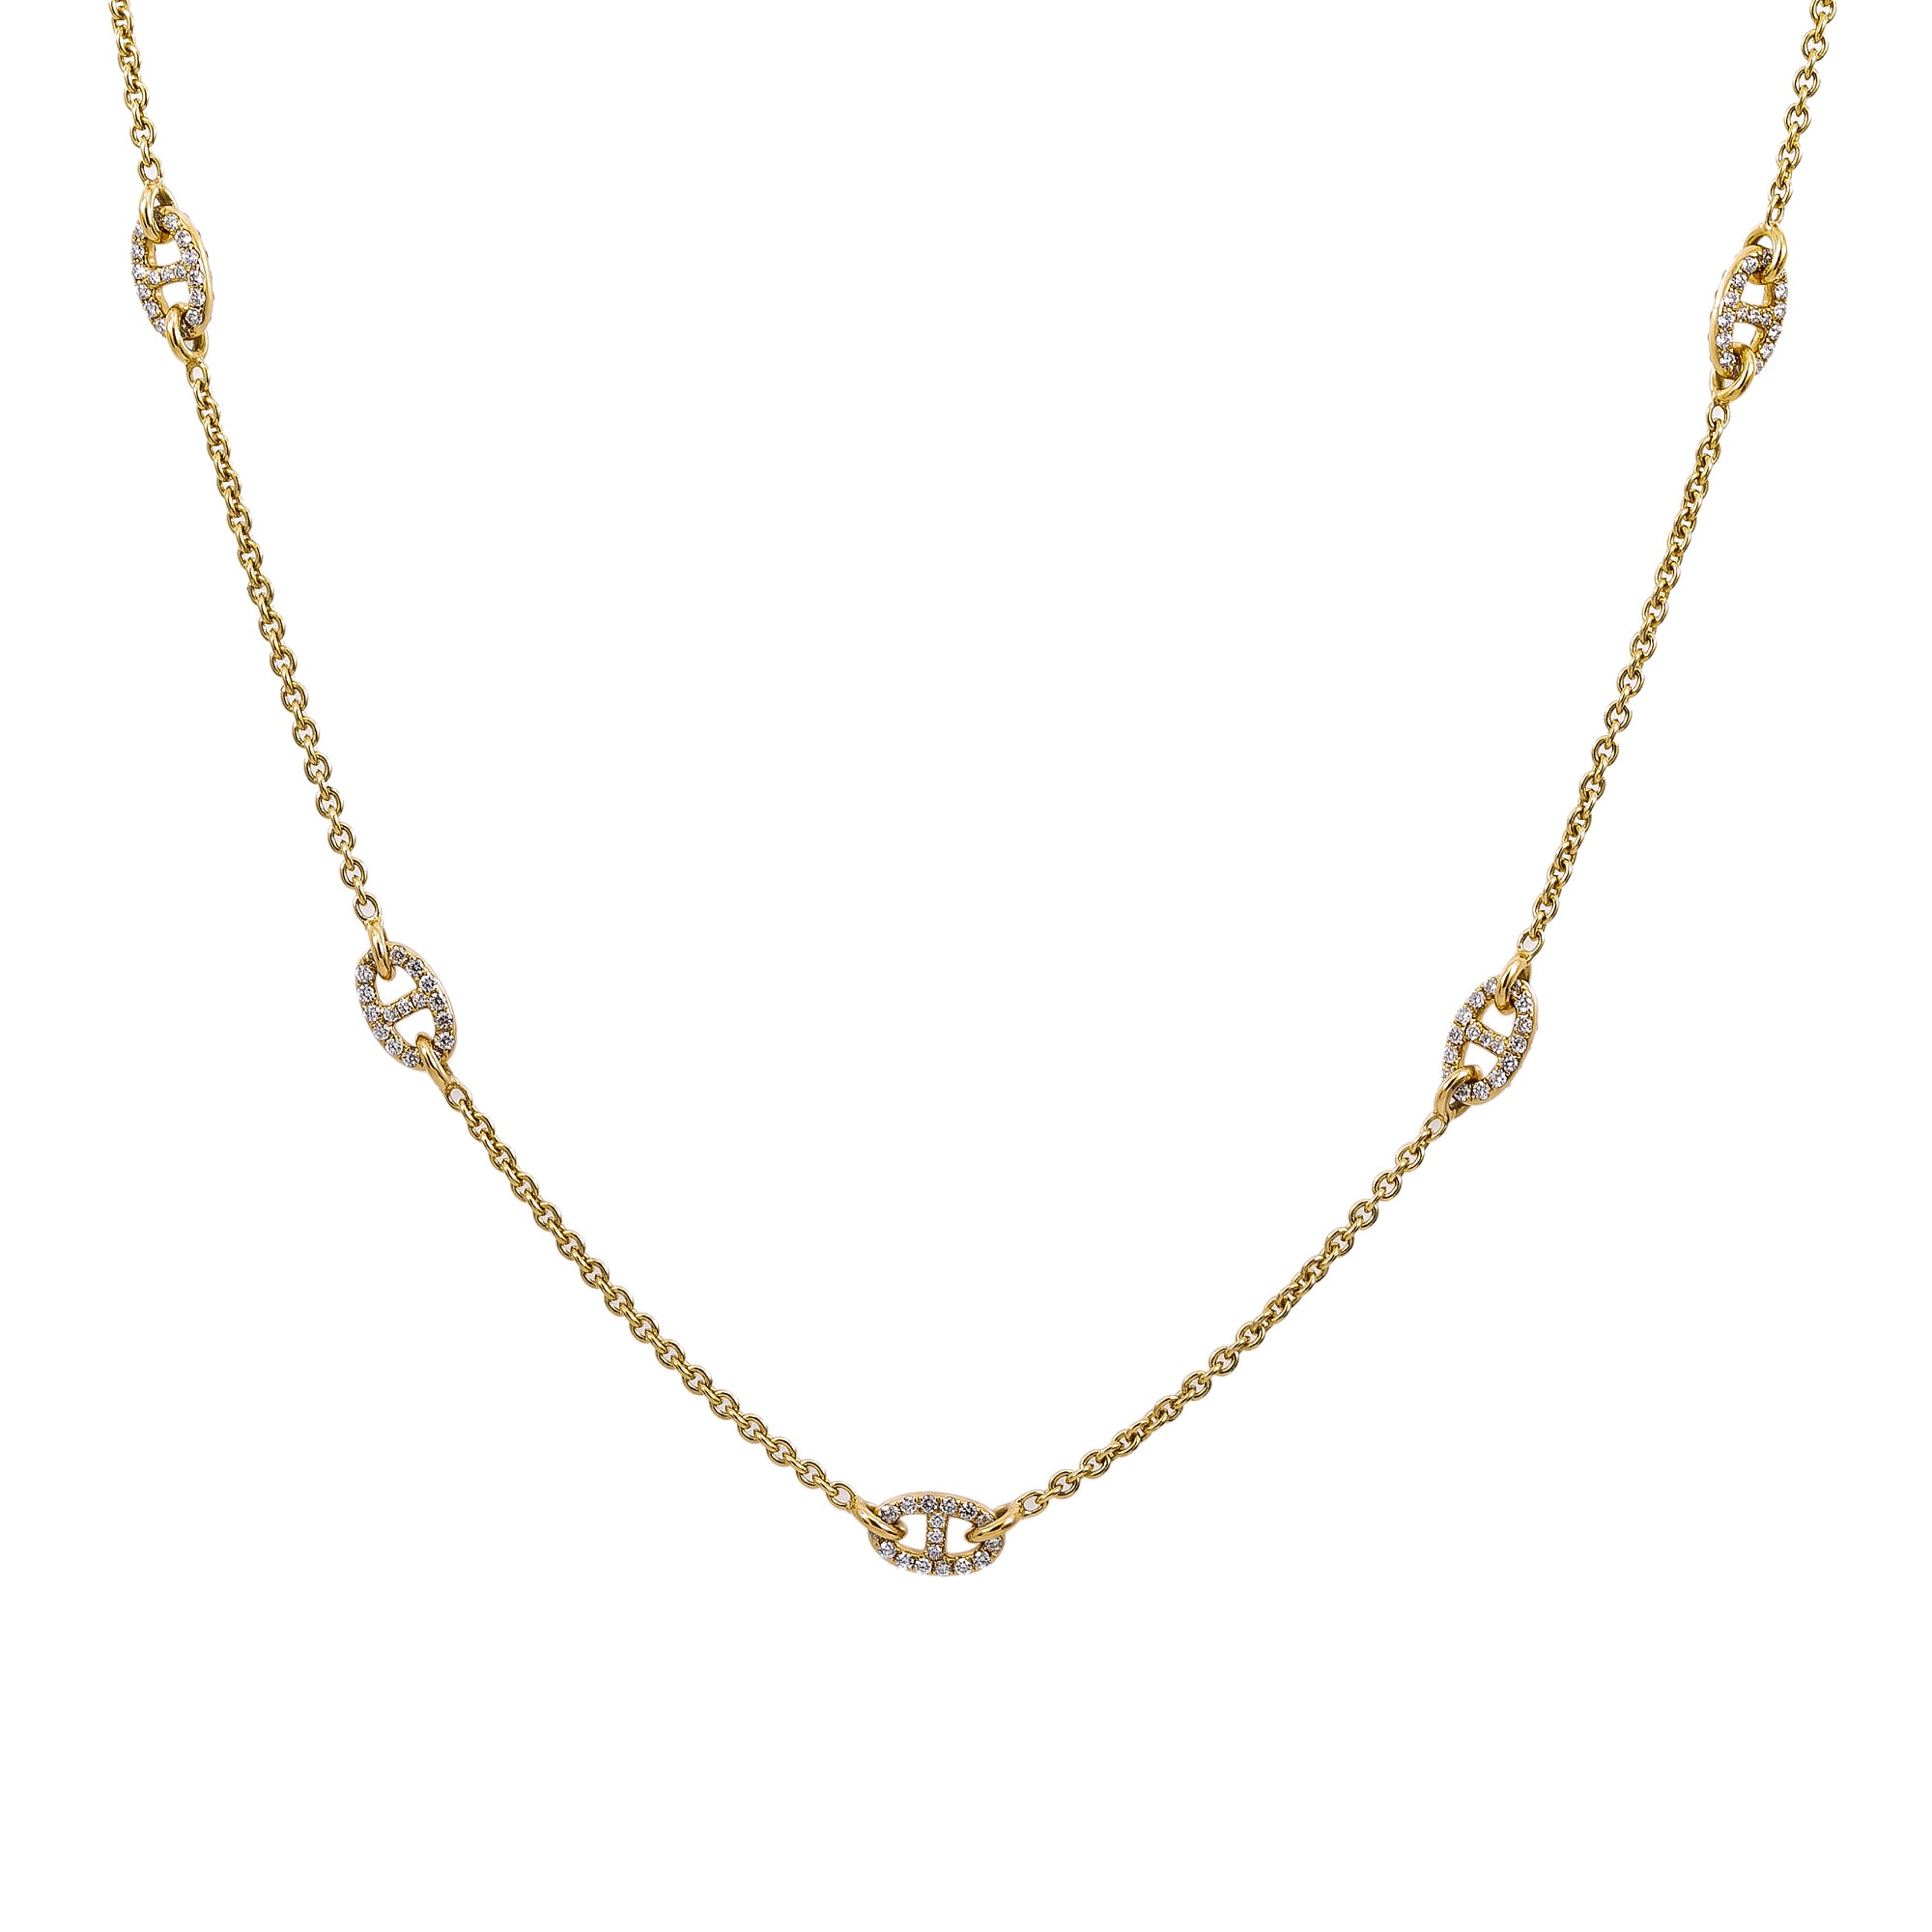 18K Yellow Gold Women's Necklace, 18